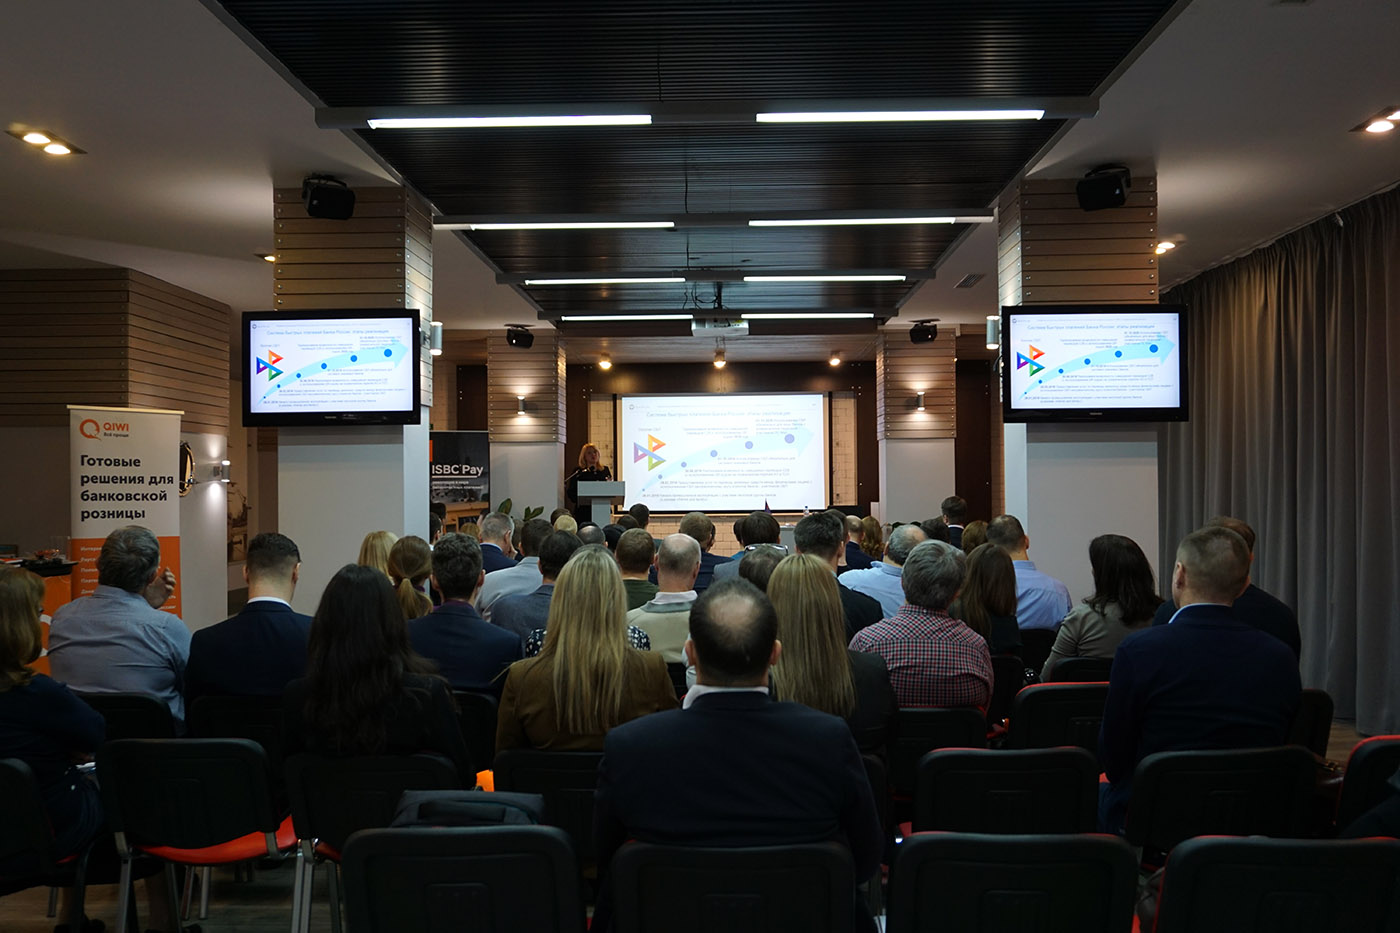 MST company introduced fintech platform JoinPAY at the Road Show 2020 forum